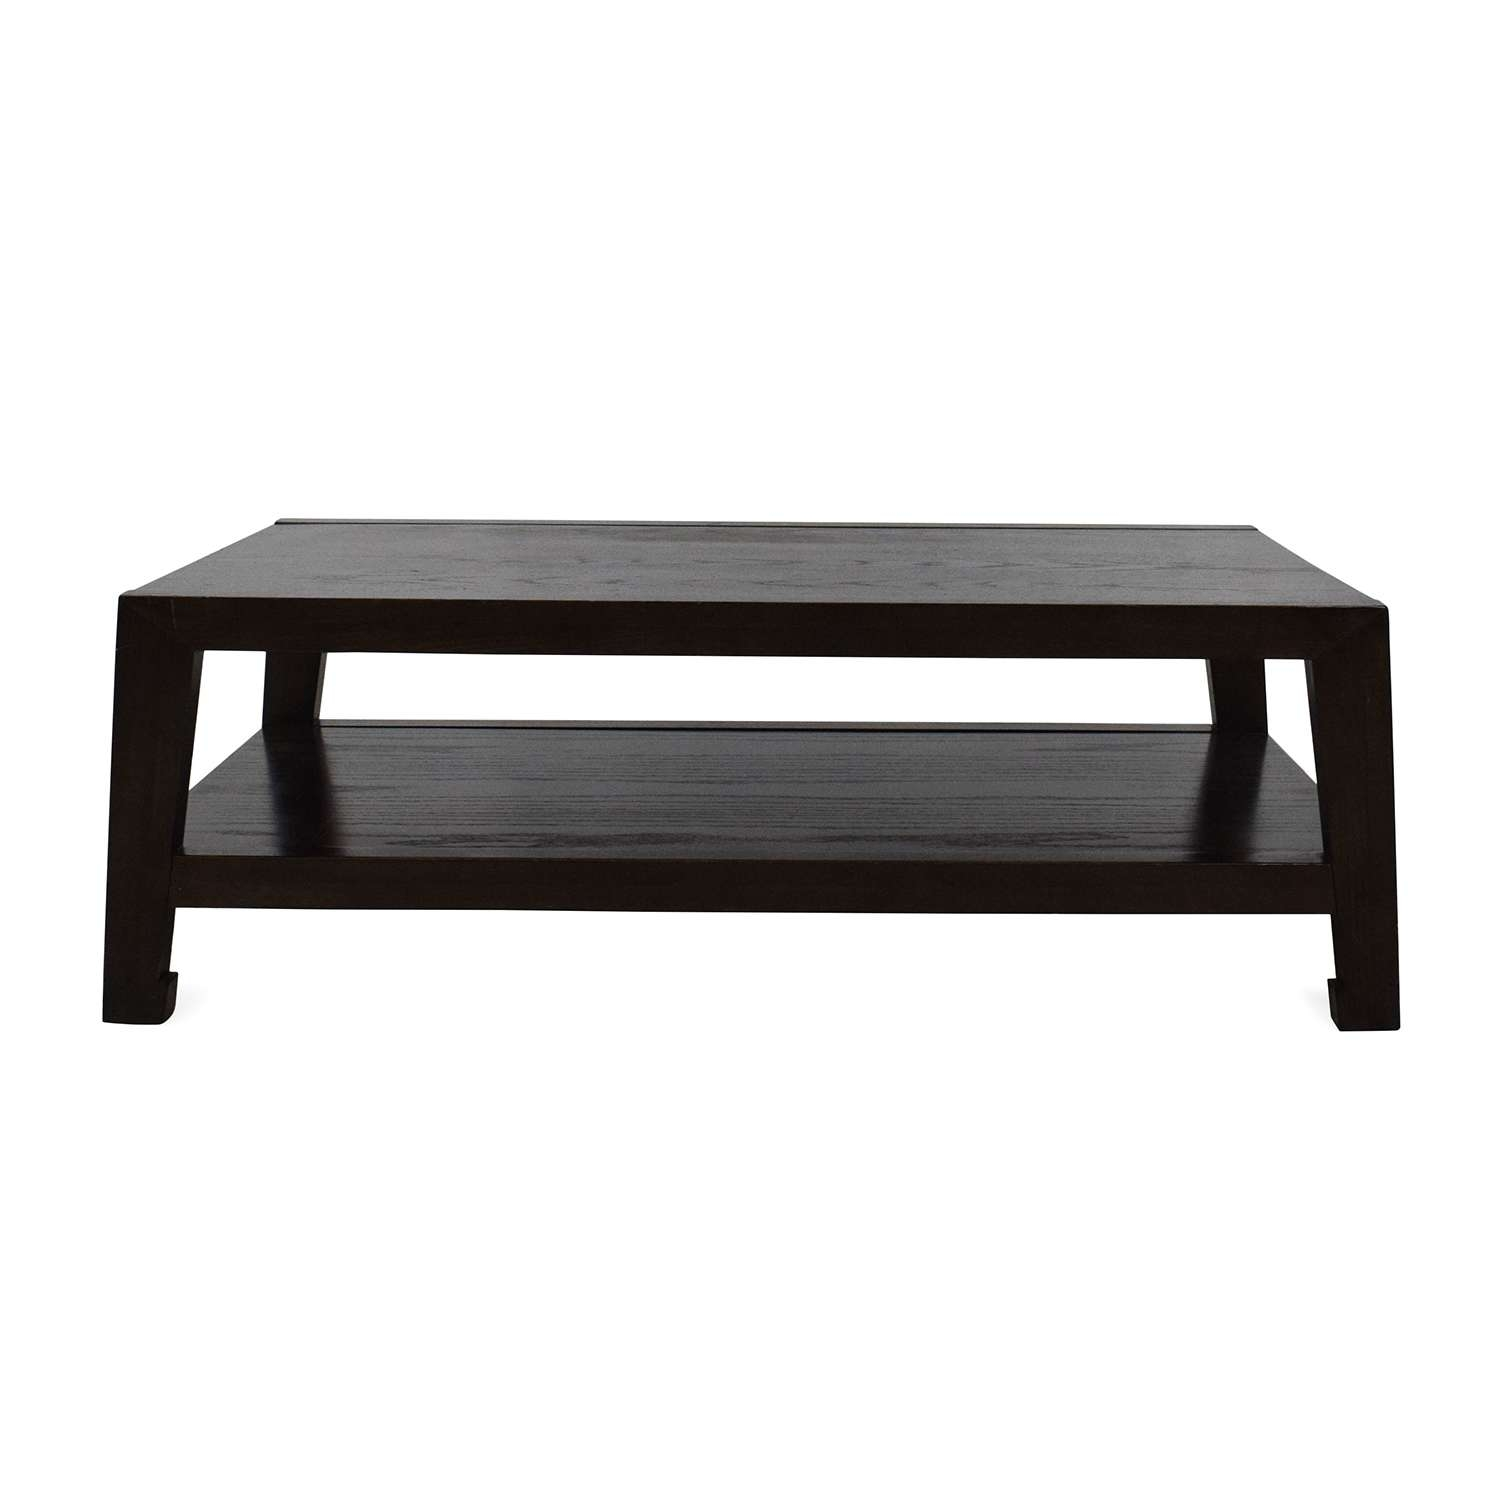 Newest Dark Mango Coffee Tables Inside Coffee Table : Magnificent Living Room Coffee Table Coffee Table (View 17 of 20)